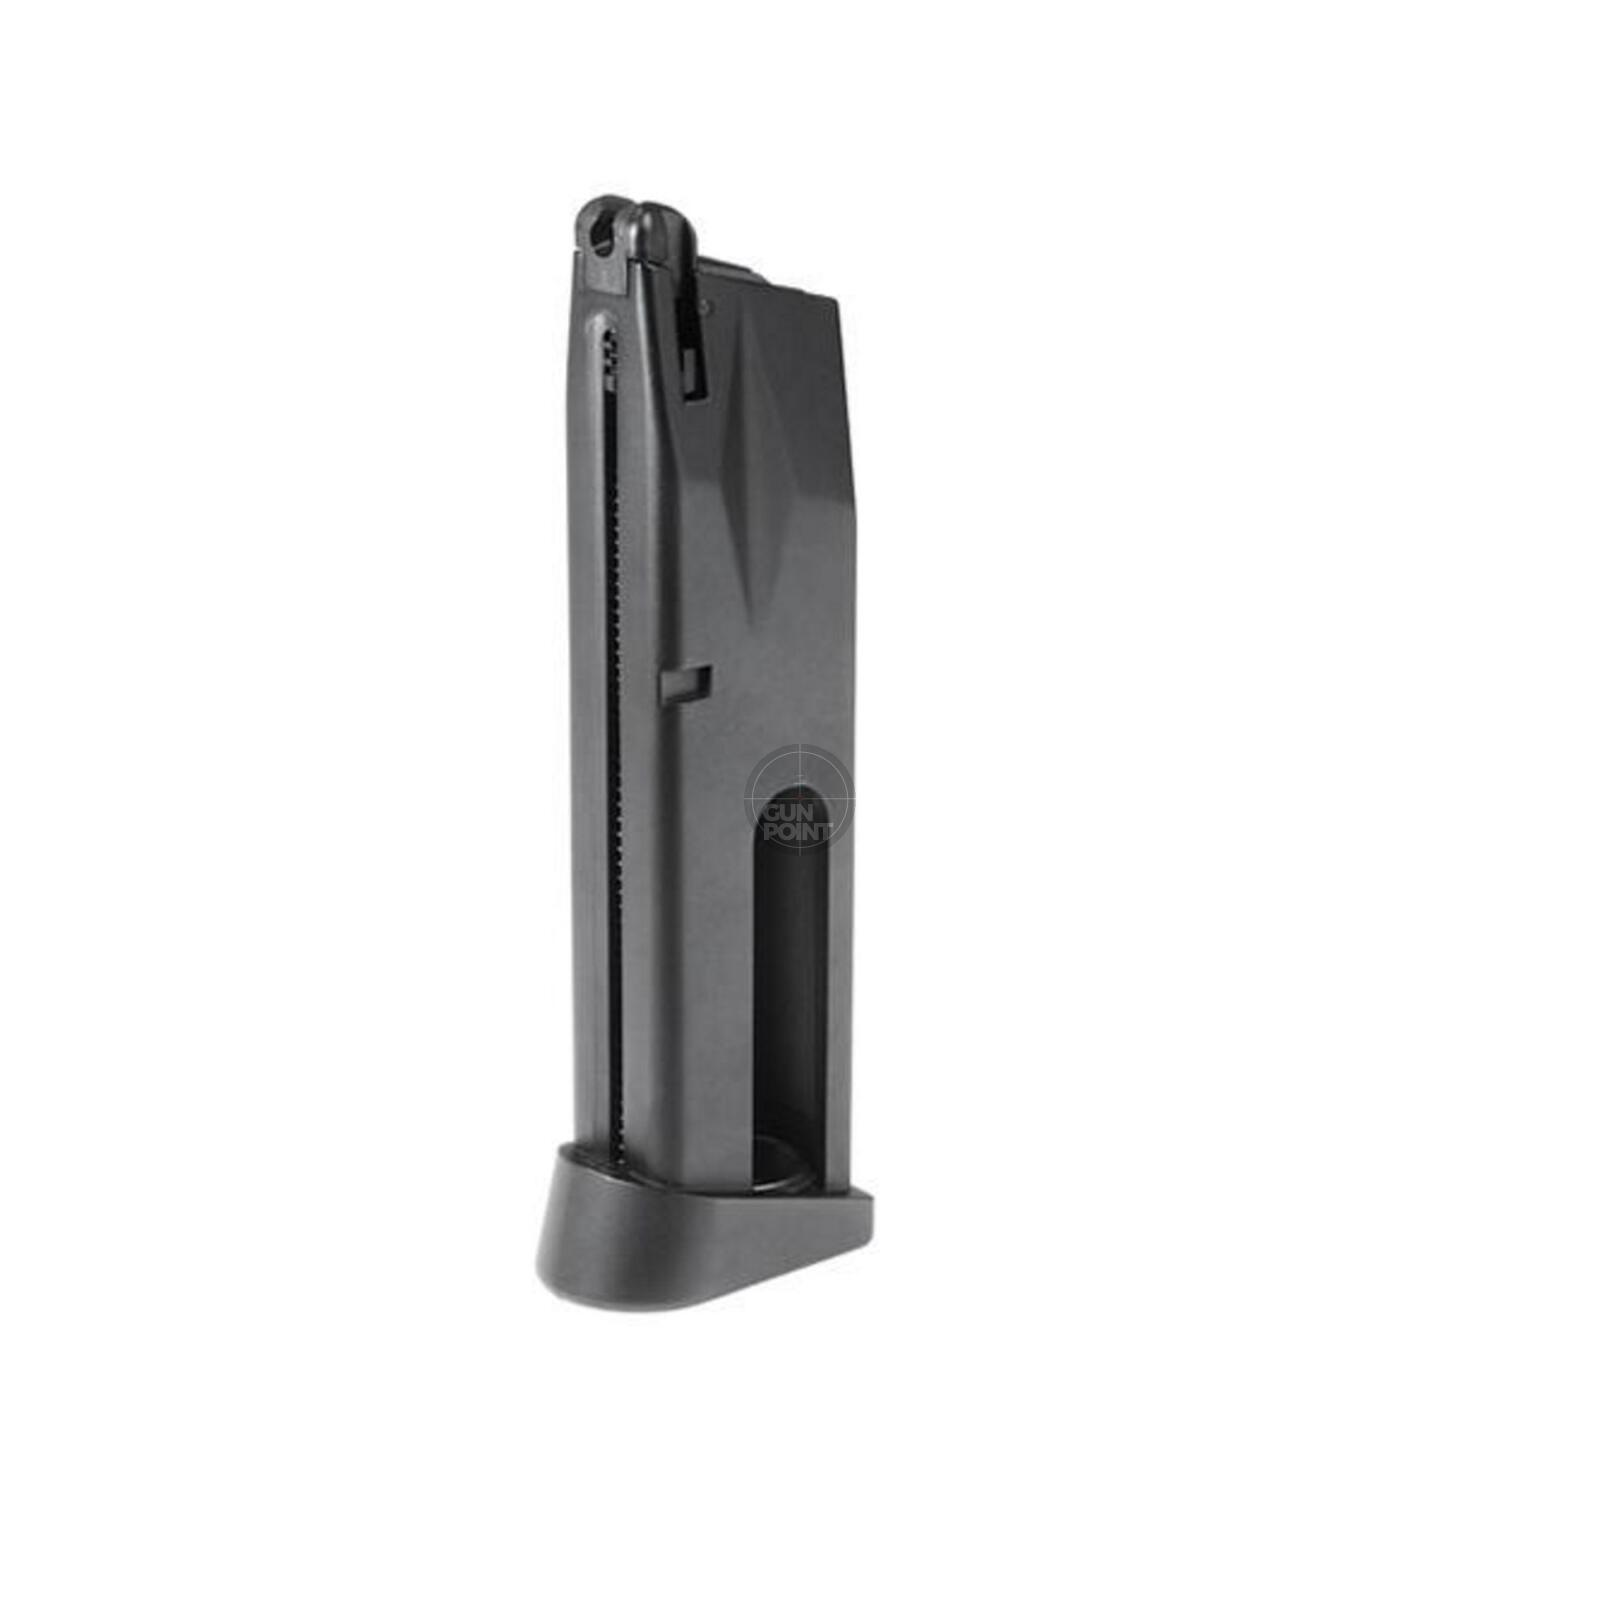 Magazin Swiss Arms P92 4,5mmBB 21 Schuss Co2 BlowBack